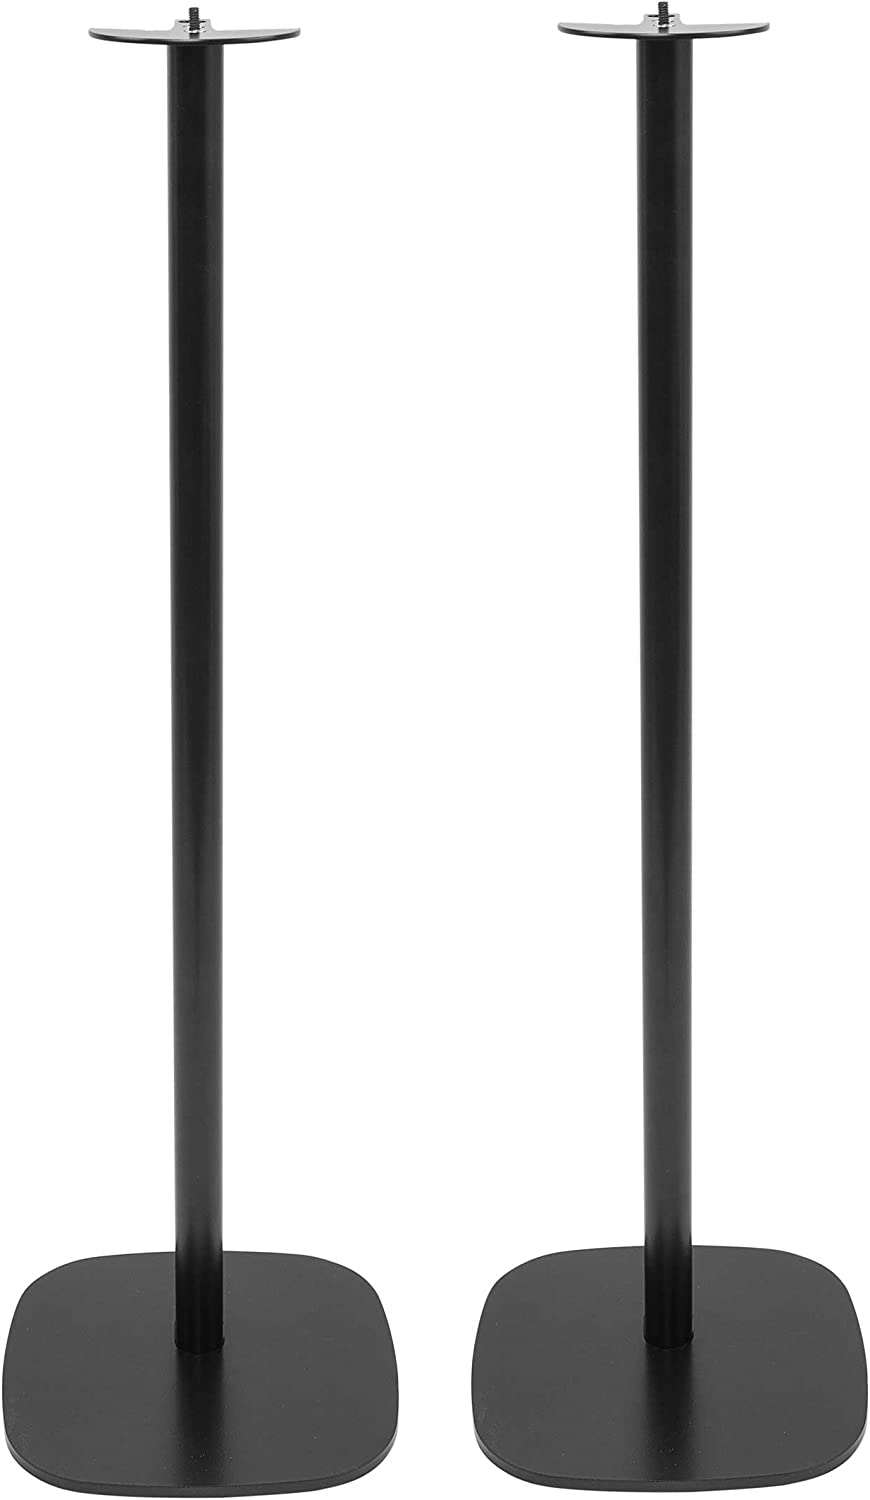 Vebos Floor Stand Samsung R5 WAM5500 Set en Optimal Experience in Every Room Compatible with Your Samsung R5 Speaker